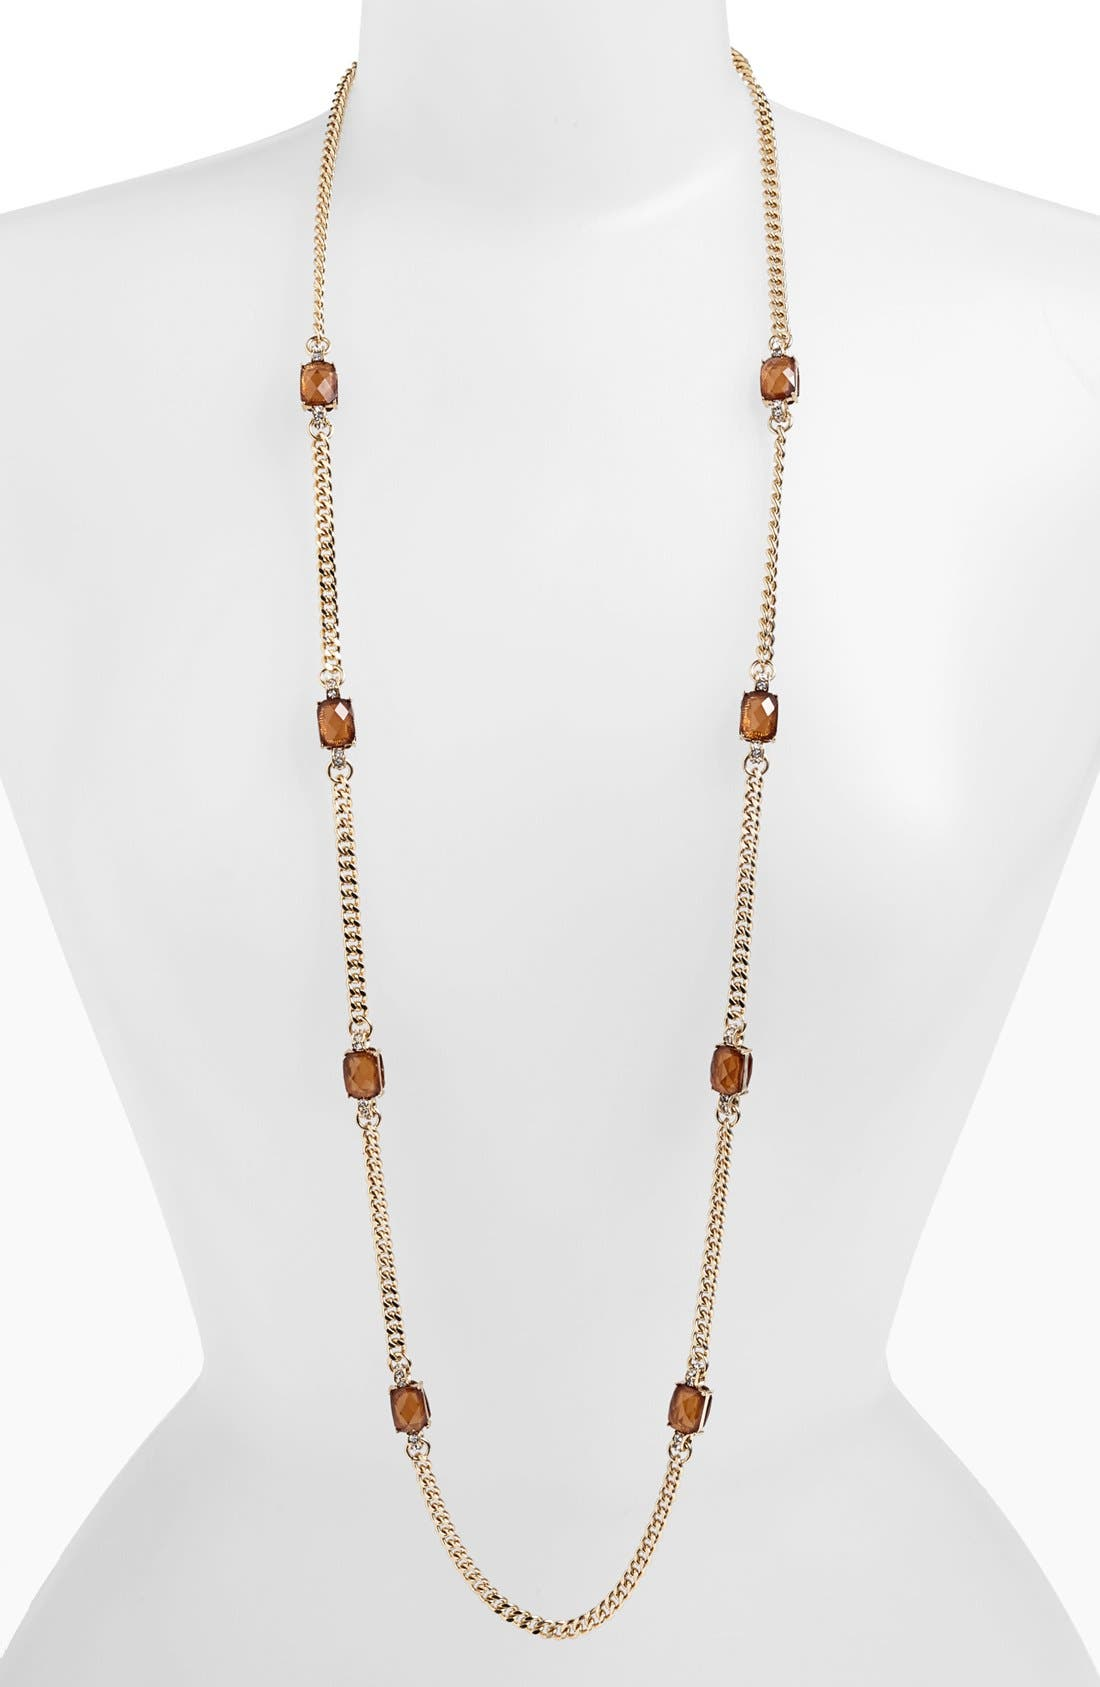 Main Image - Anne Klein Stone Station Necklace